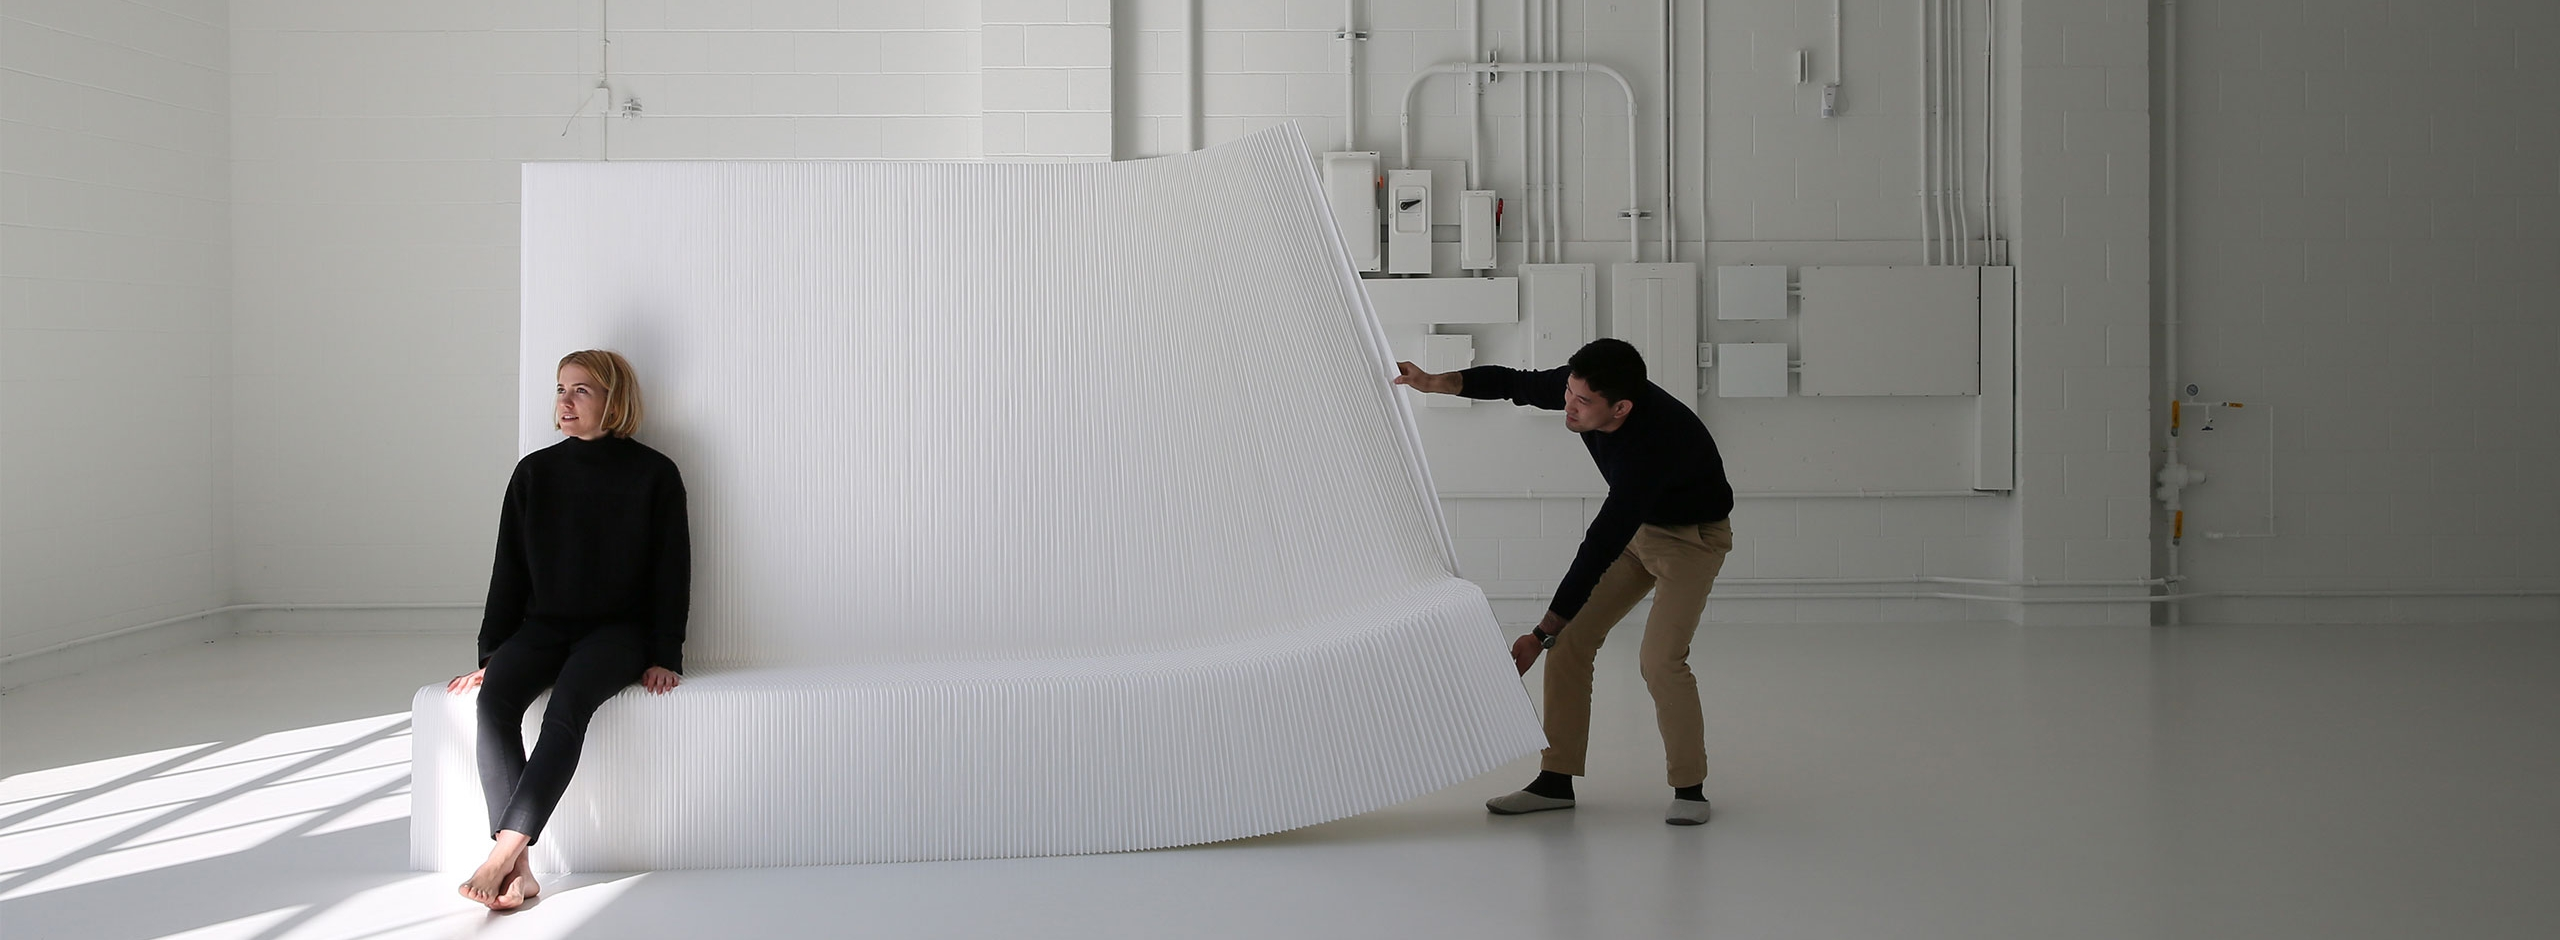 a man tries to stretch open a white textile benchwall while a woman sits on it and weighs it down